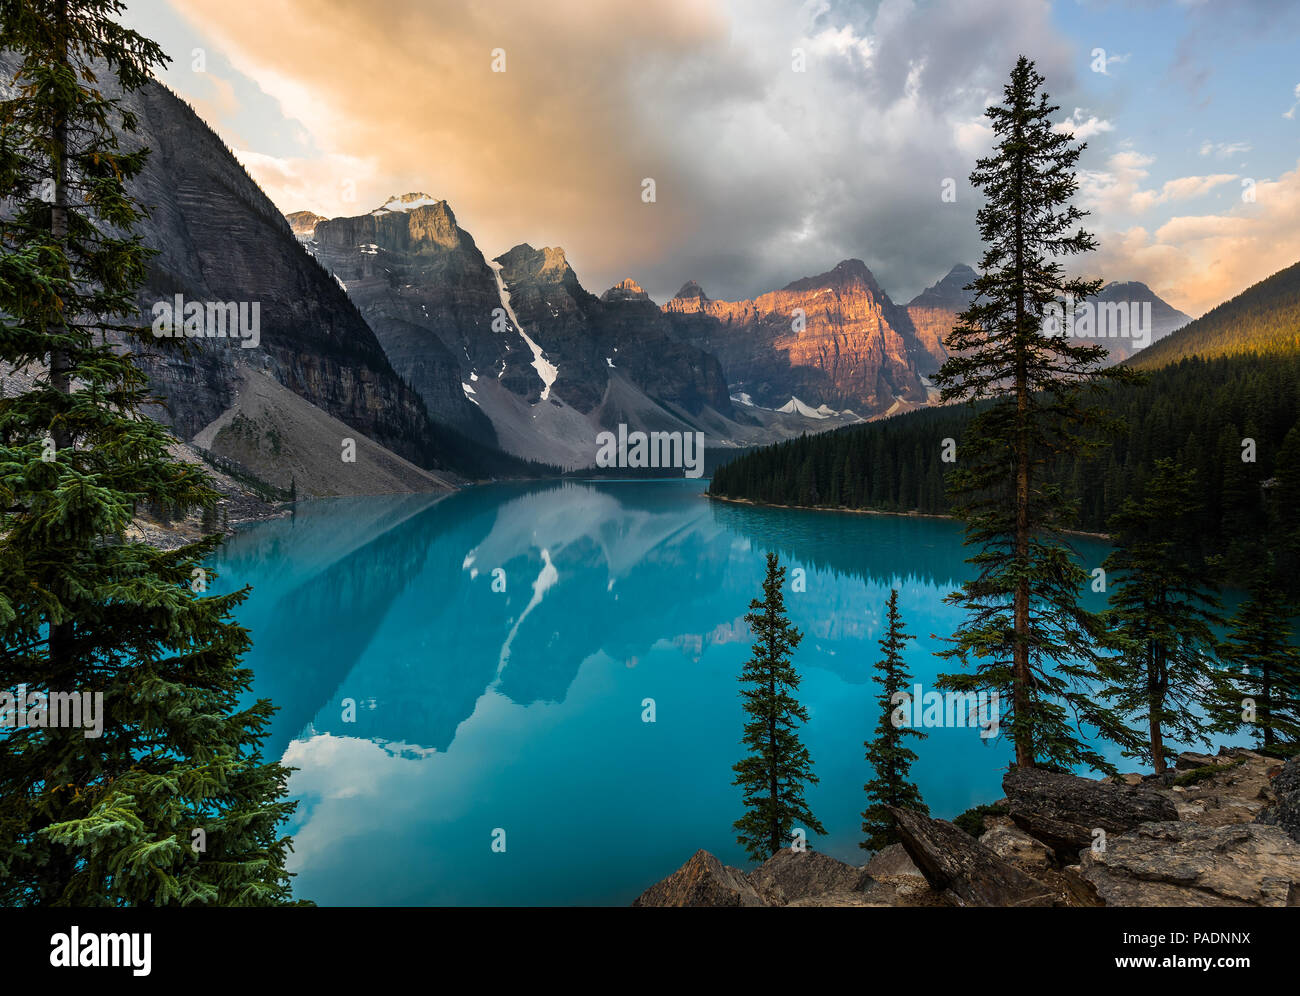 Sunrise with turquoise waters of the Moraine lake with sin lit rocky mountains in Banff National Park of Canada in Valley of the ten peaks. - Stock Image